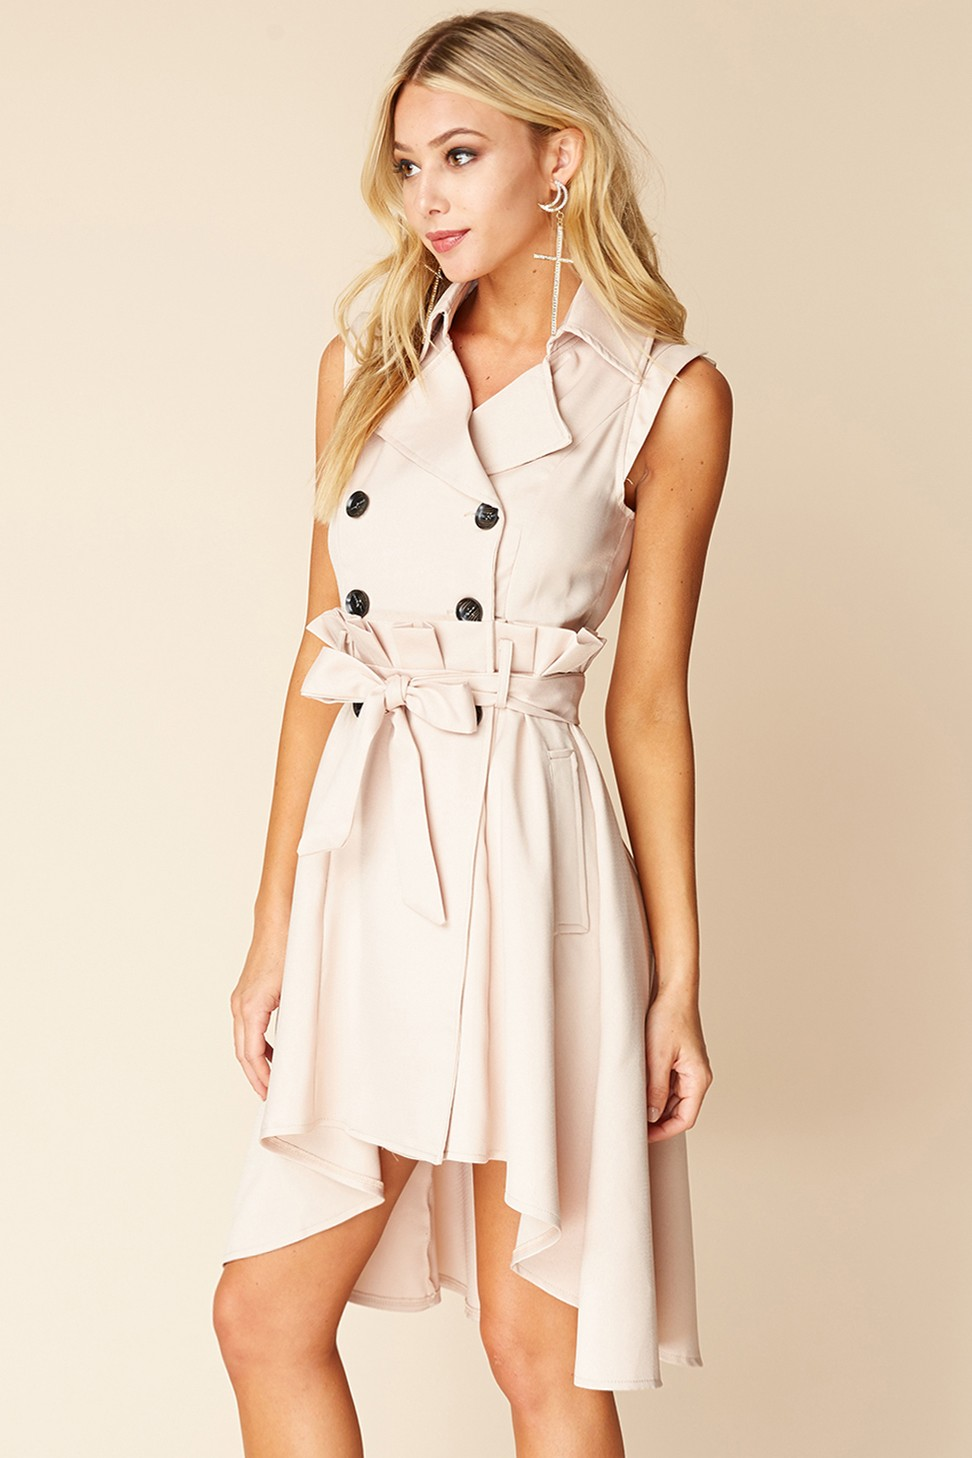 A Trench Dress